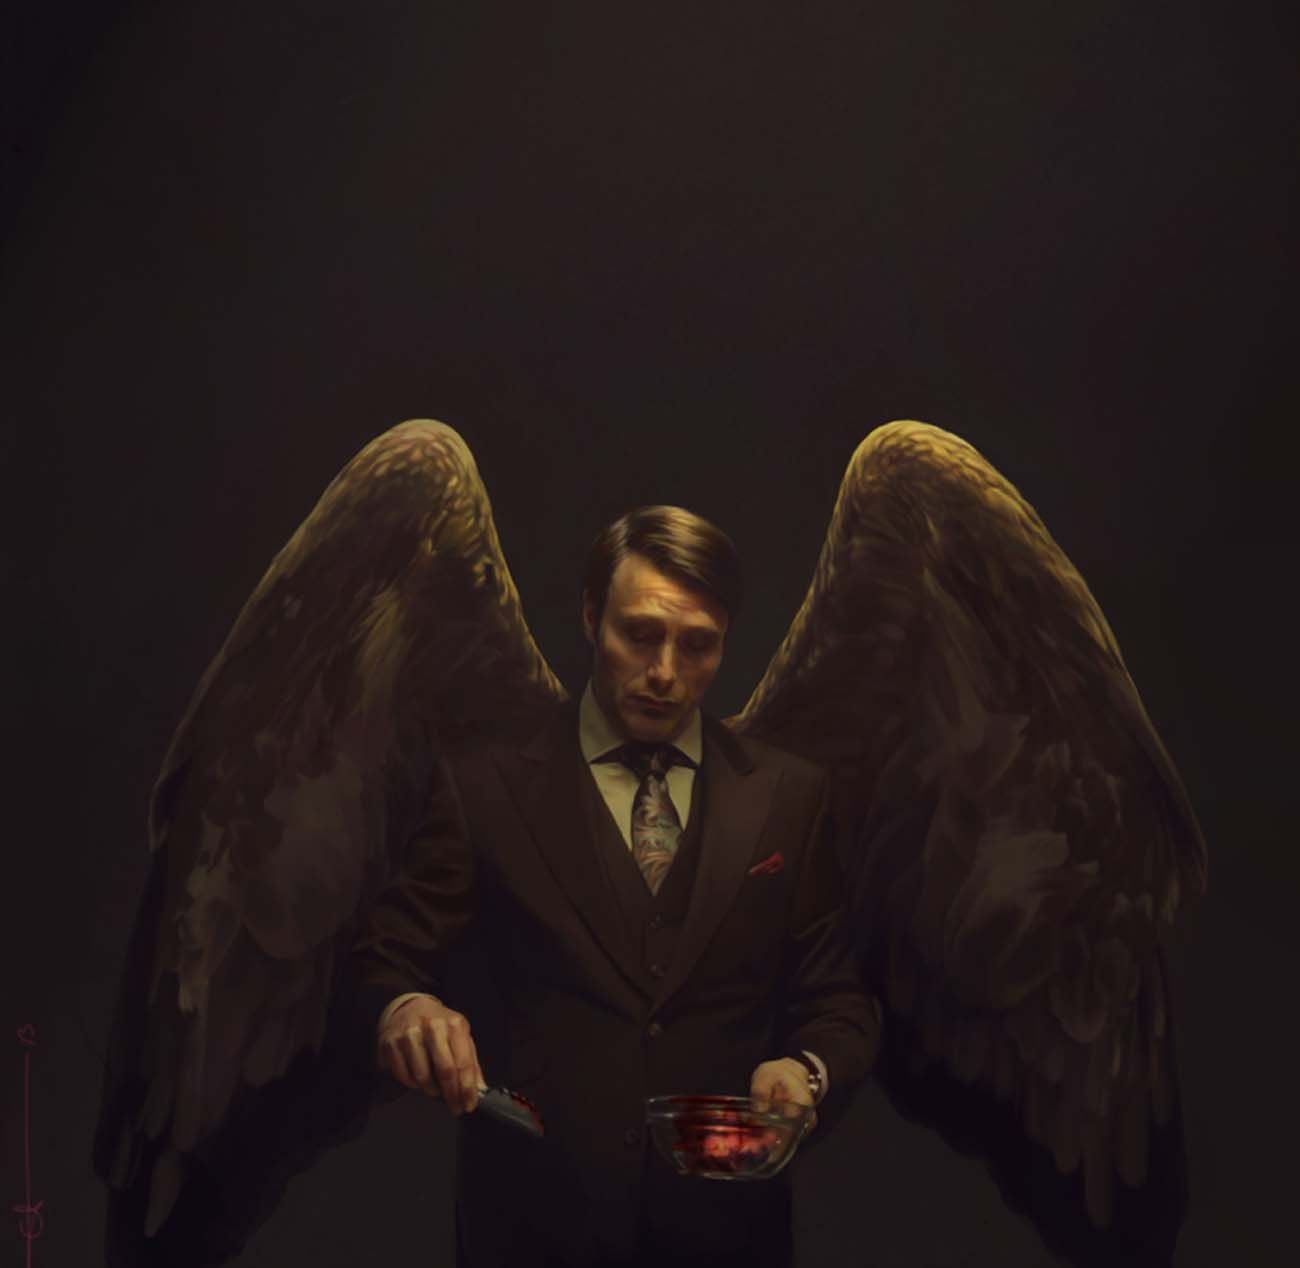 Pin by maff on Mads Mikkelsen♠️ | Hannibal series